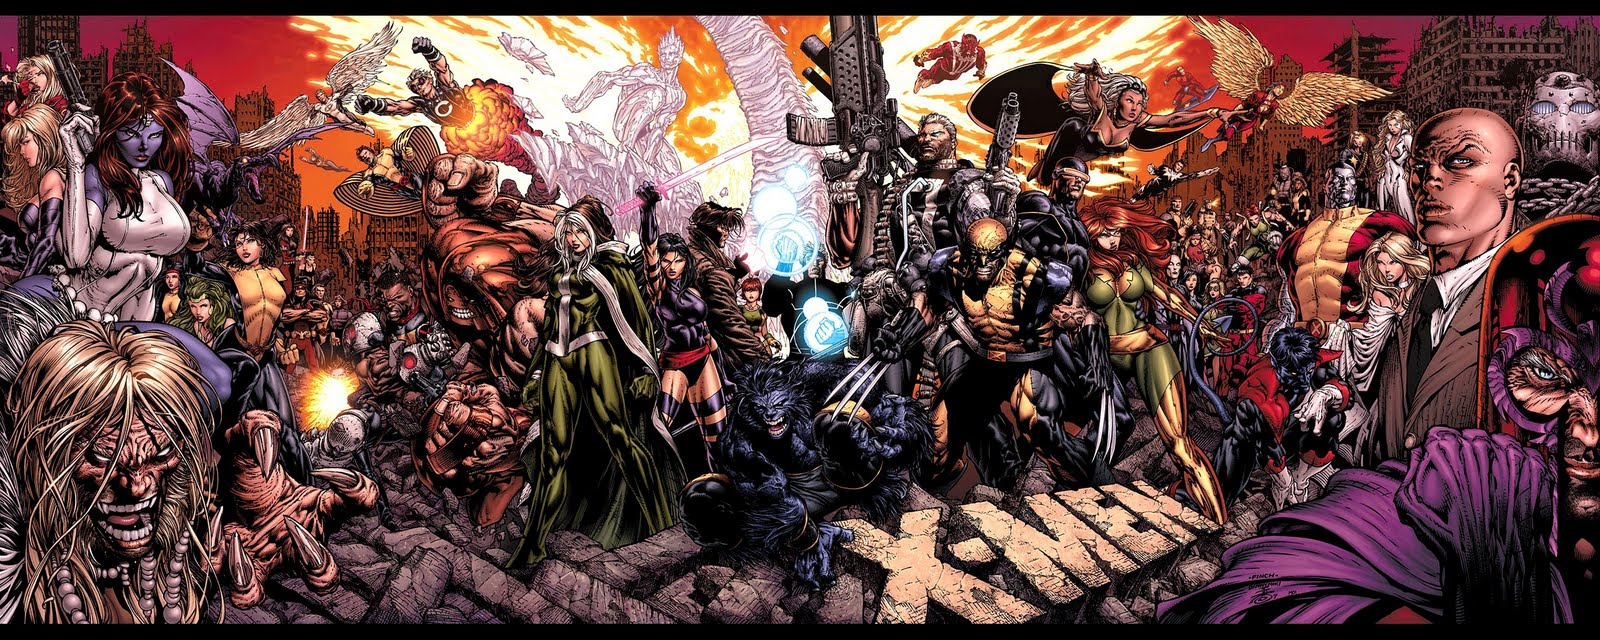 Download free all marvel comics together hd desktop wallpapers high